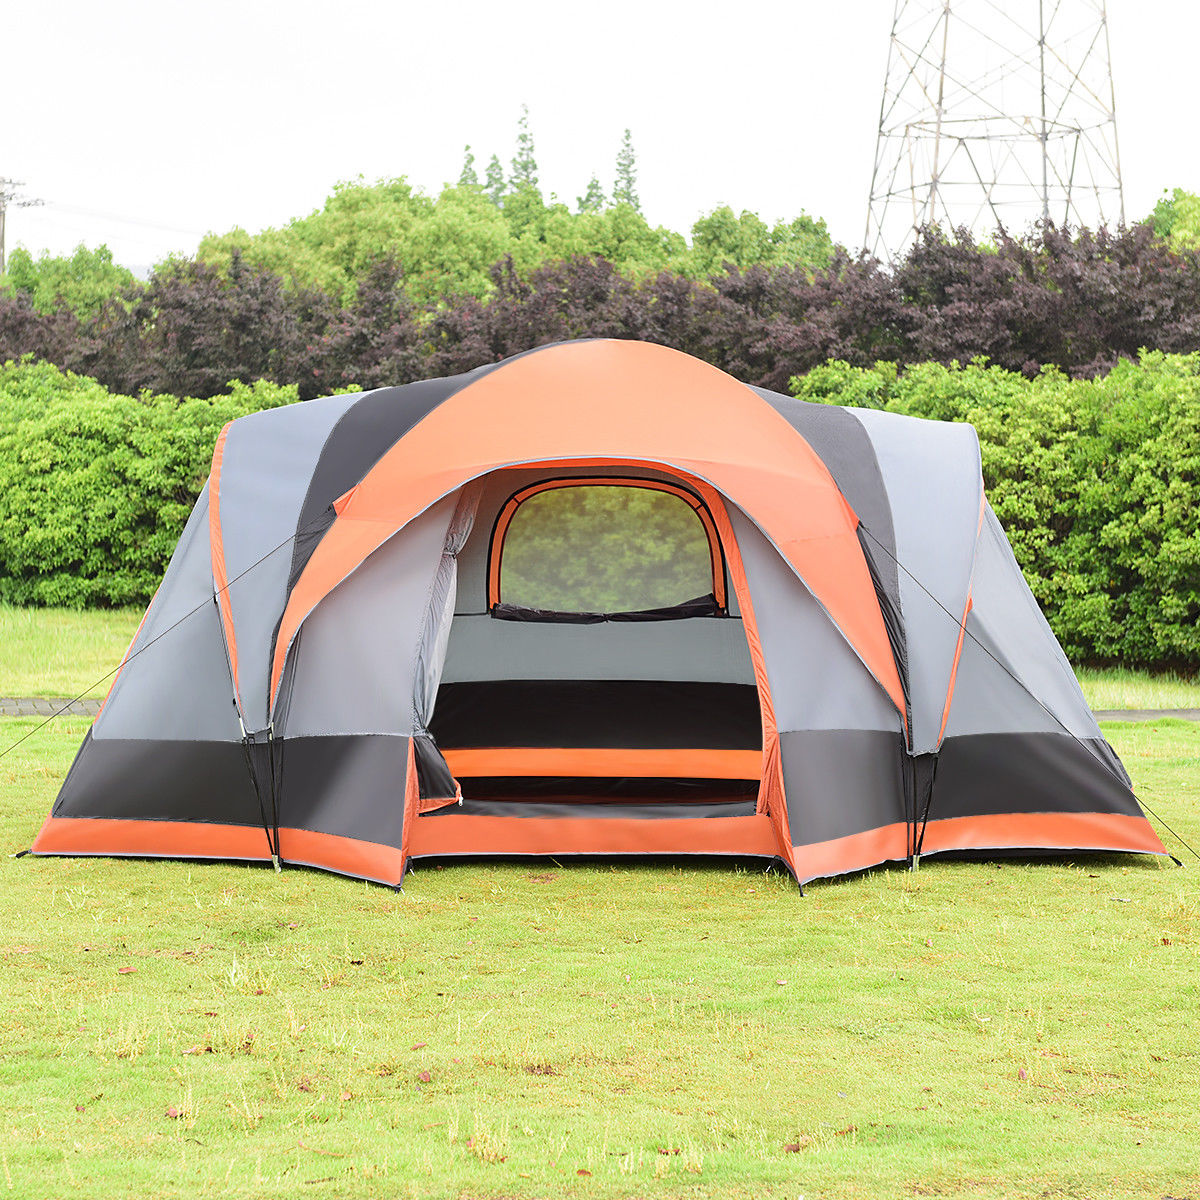 Gymax Portable 8 Person Family Tent Easy Set Up Outdoor Camping Hiking Rainproof W